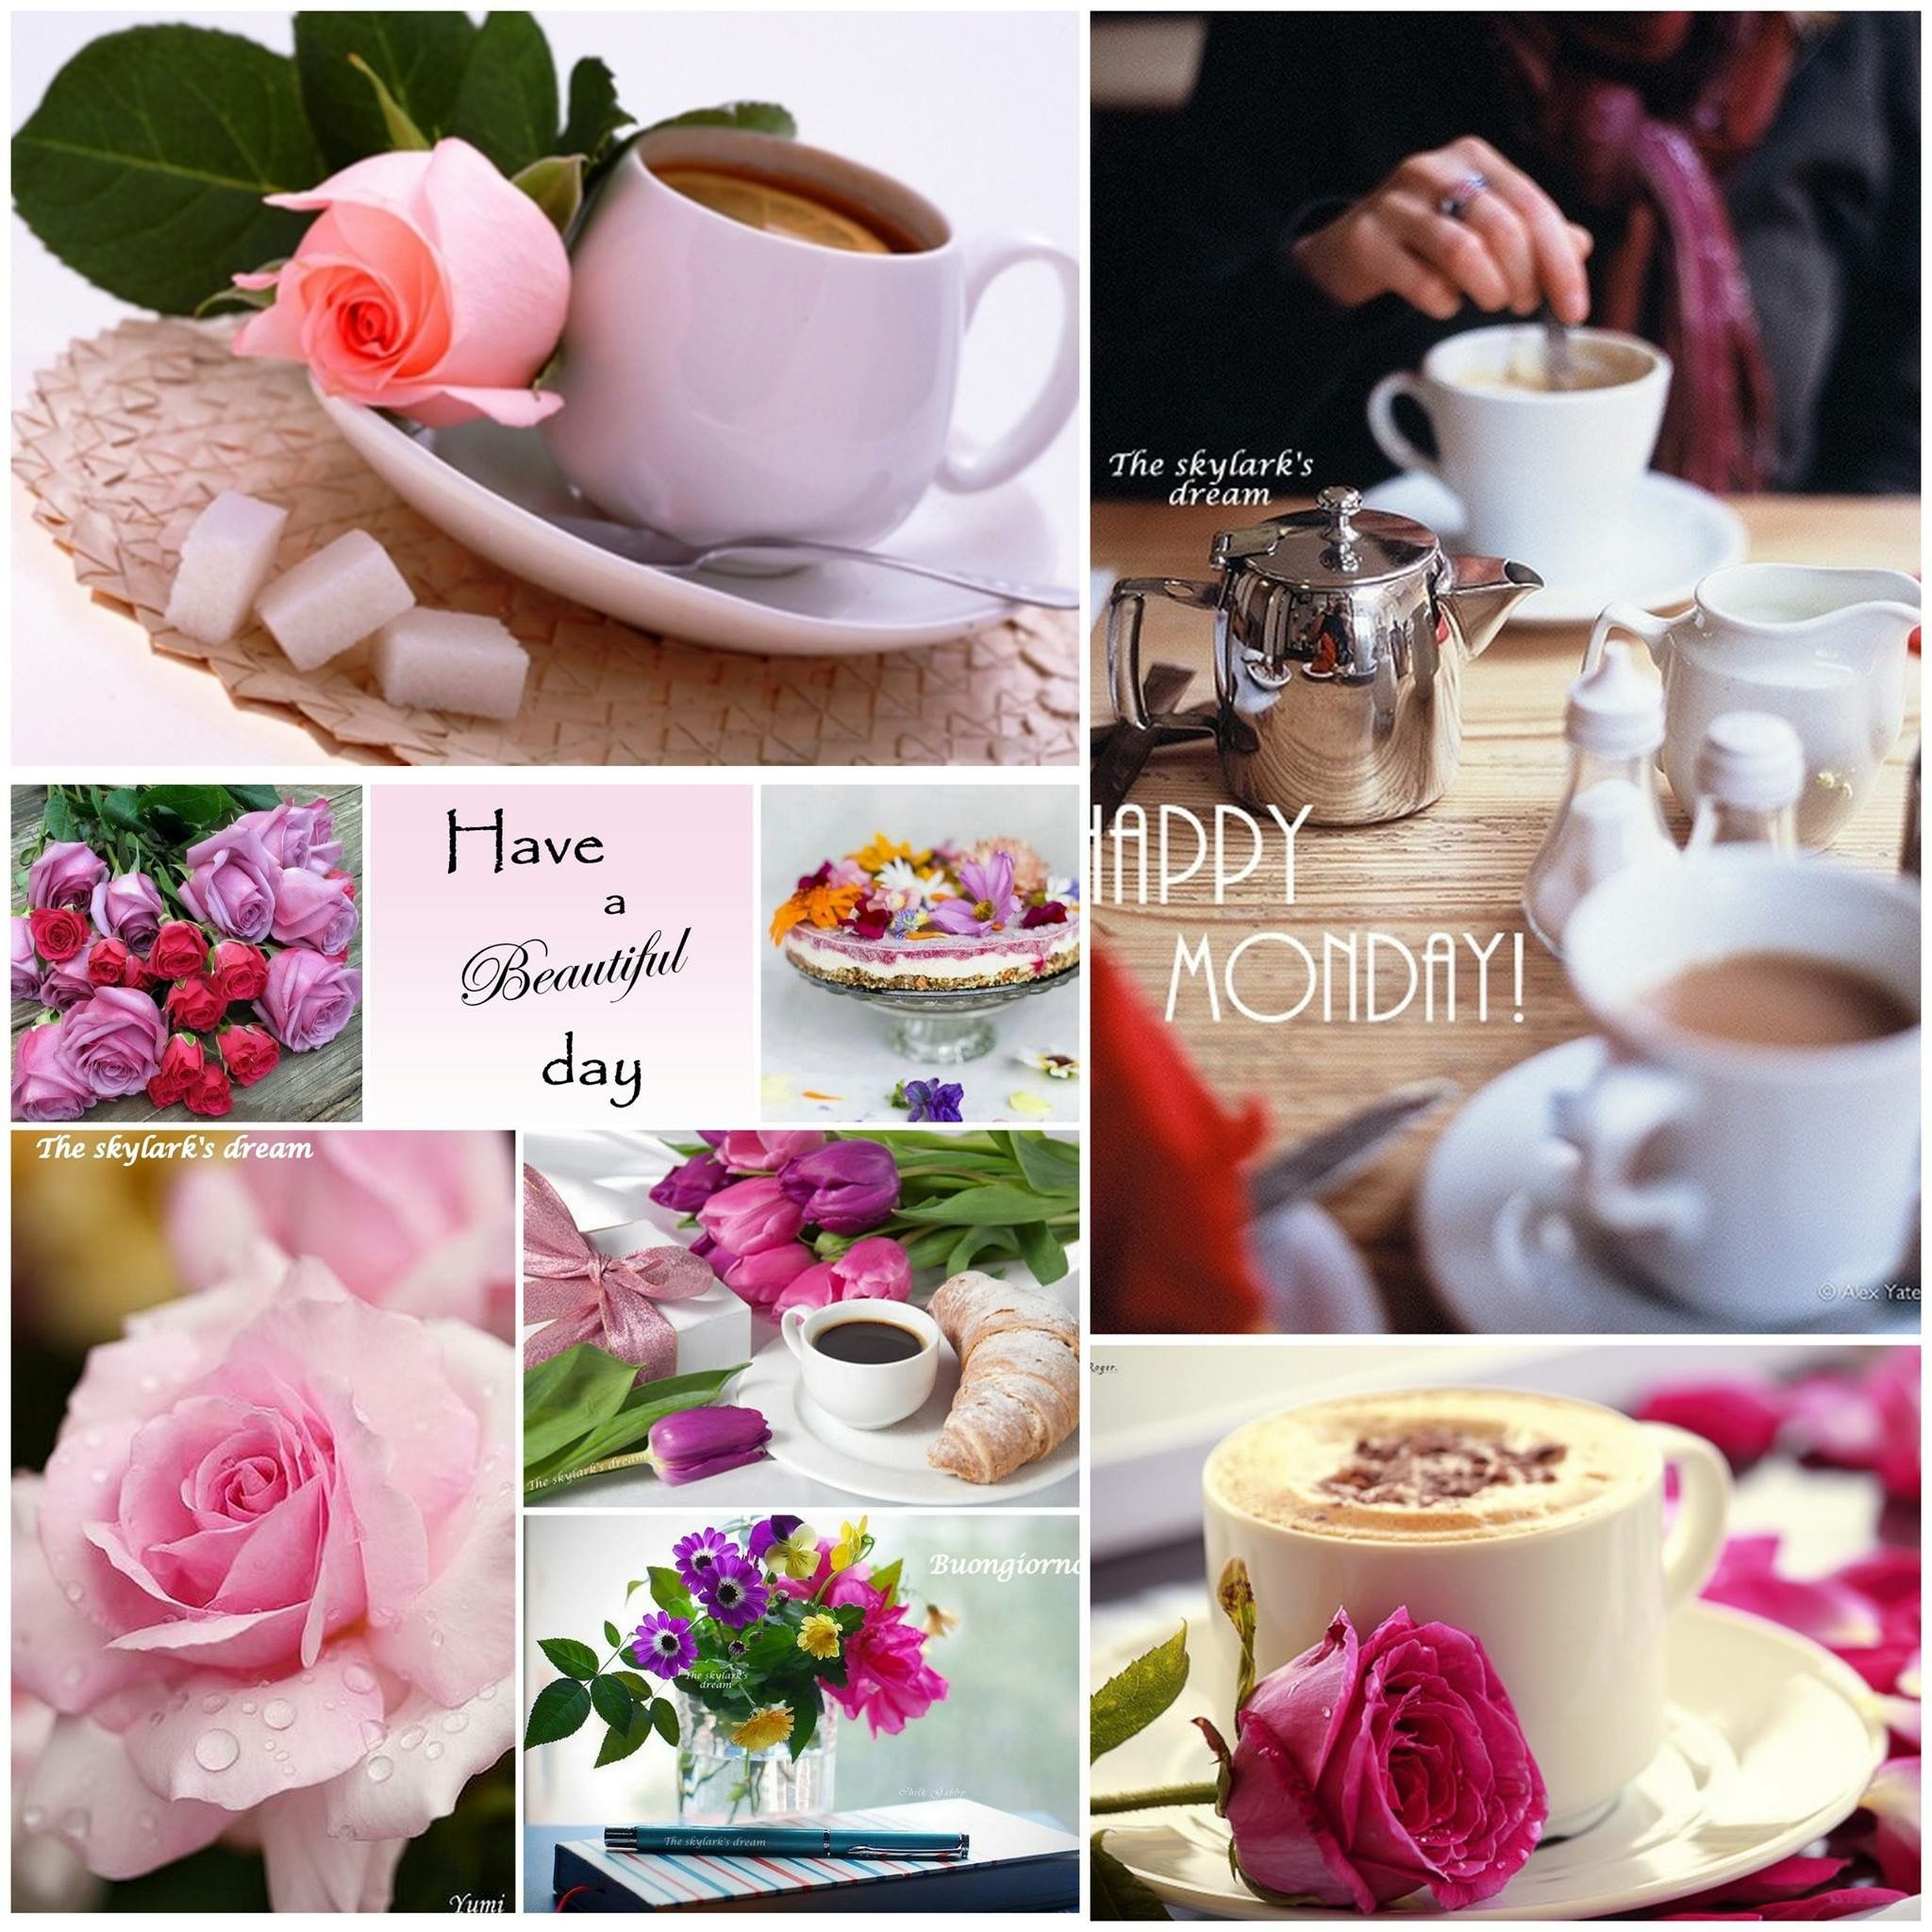 Happy Monday Good morning coffee, Beautiful day quotes